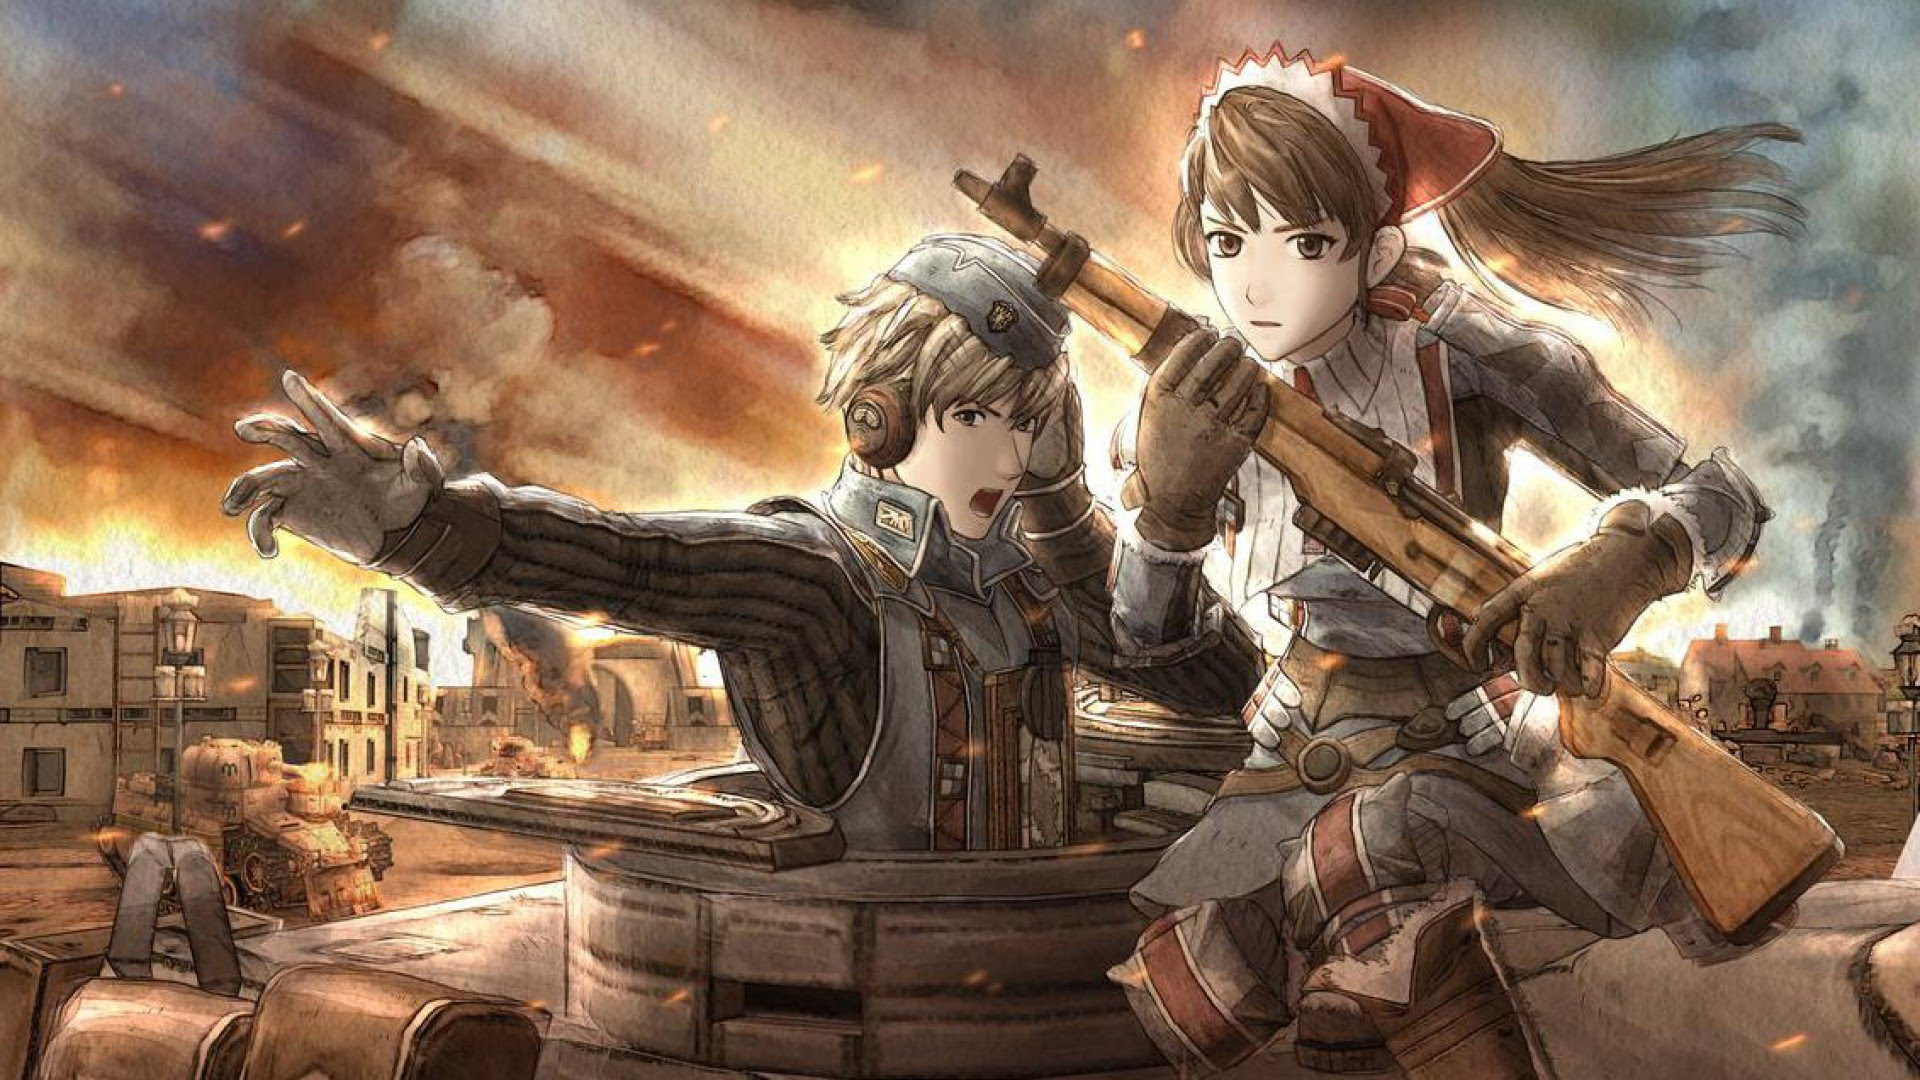 Photo of Polish site reporting a release date for Valkyria Chronicles remaster on PS4